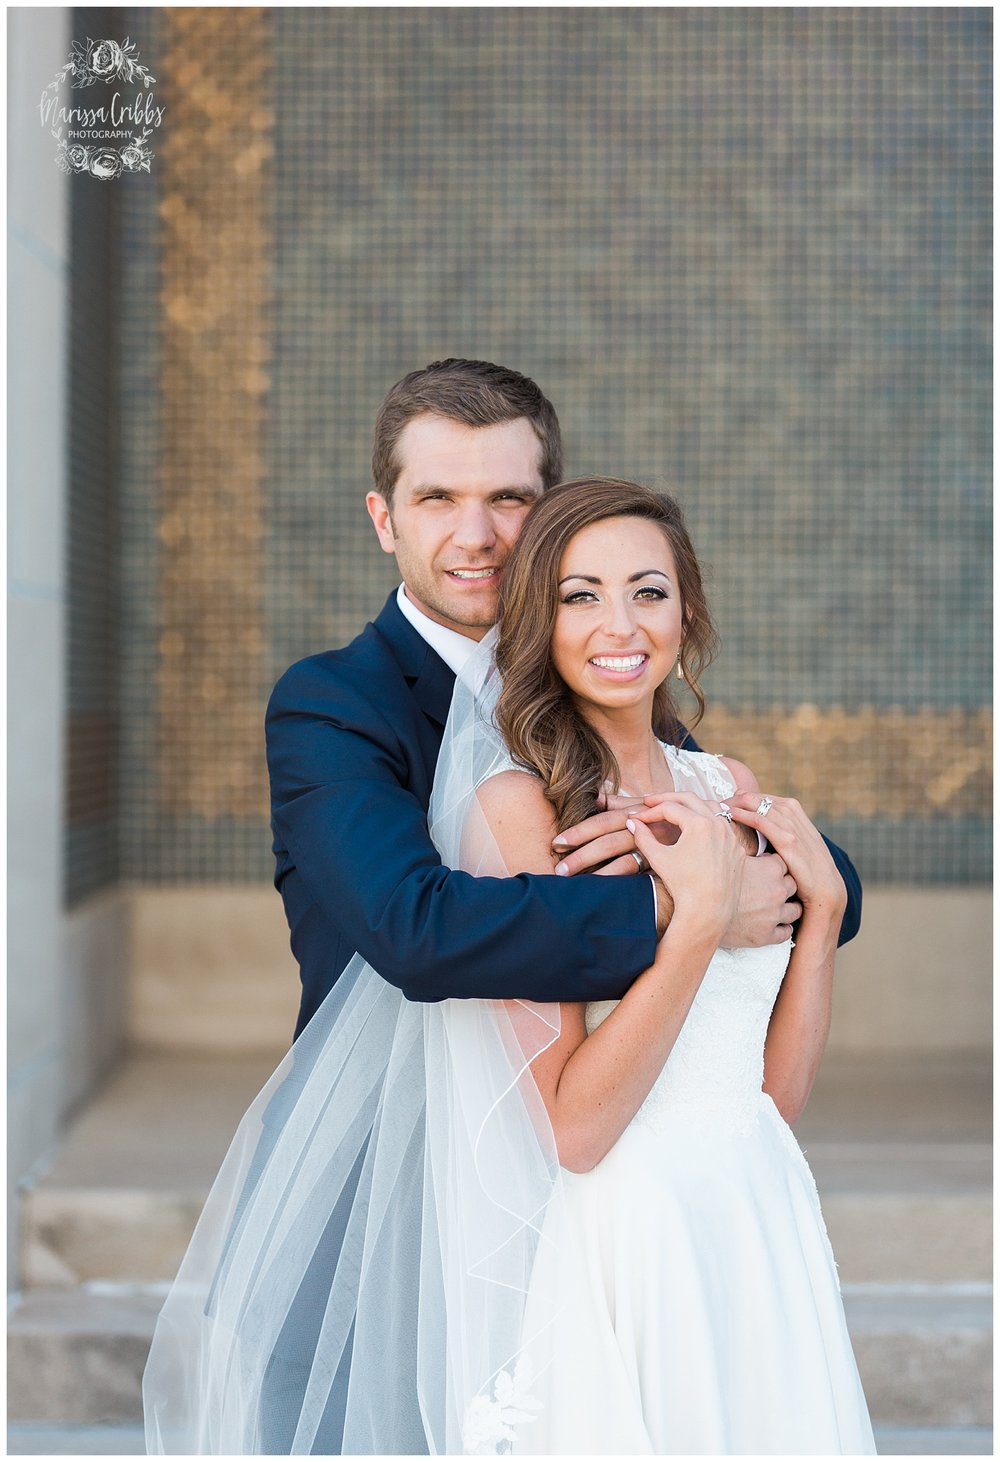 BRENDAN & KELSEY | THE MADRID THEATRE WEDDING | OUR LADY OF PERPETUAL HELP WEDDING | KC WEDDING PHOTOGRAPHERS | MARISSA CRIBBS PHOTOGRAPHY_2034.jpg